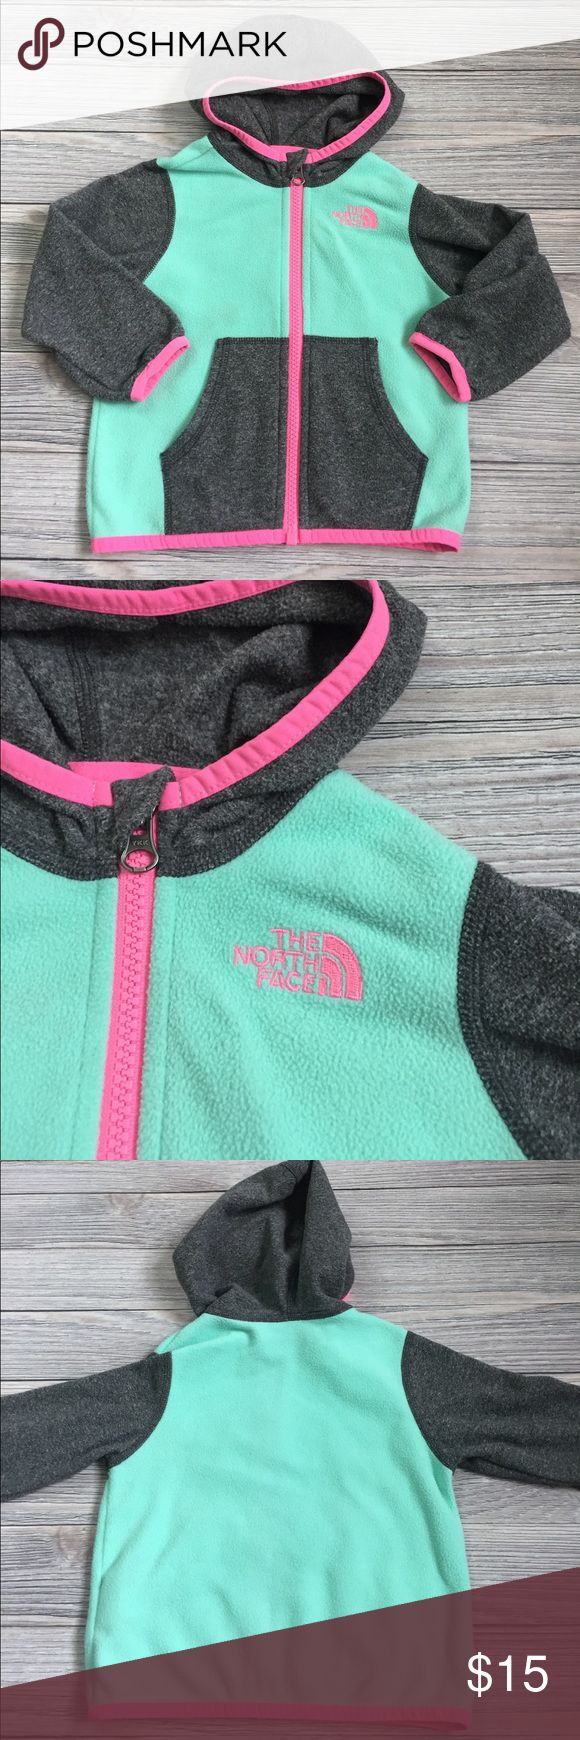 North Face Fleece Jacket Baby girl, North Face fleece jacket.  Excellent condition.  Smoke free/pet free home. The North Face Jackets & Coats